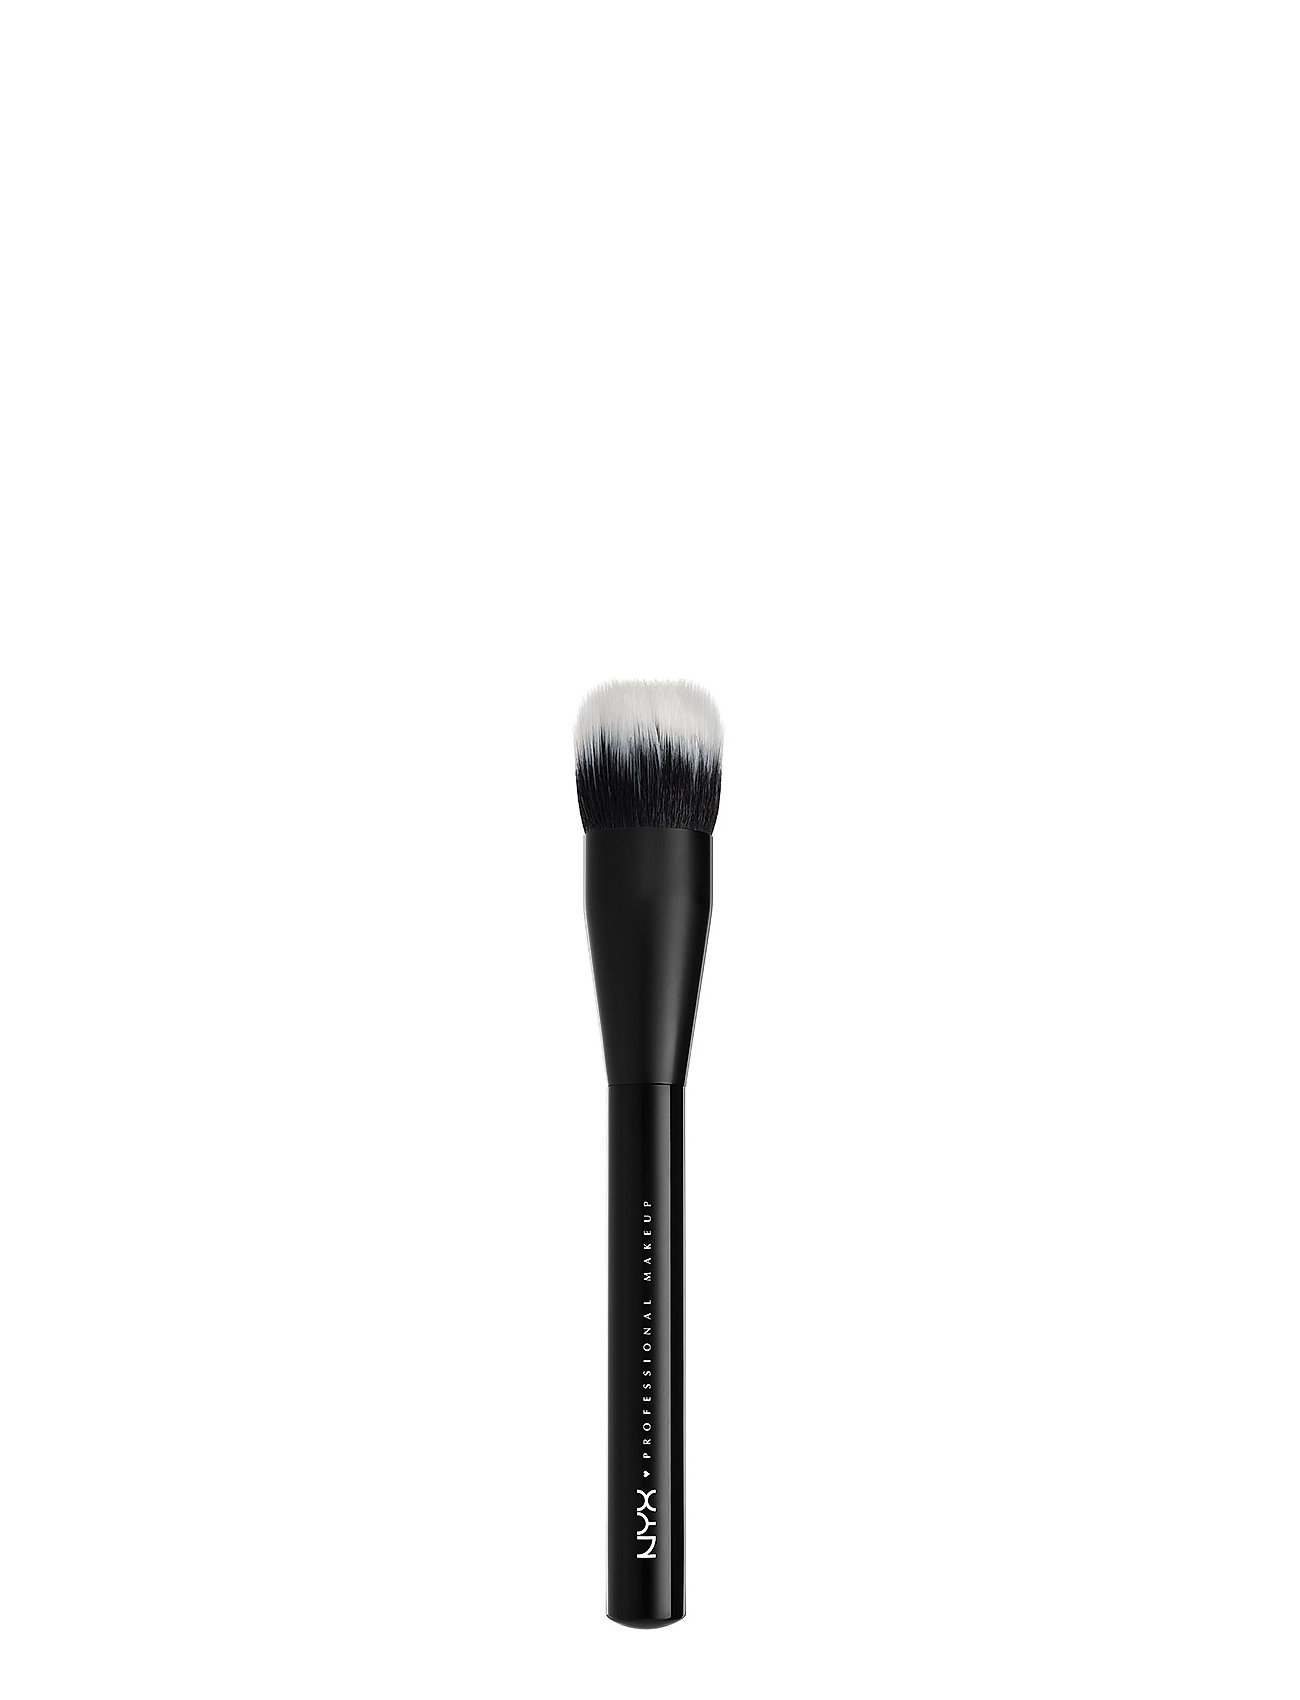 Image of Pro Dual Fiber Foundation Brush Beauty WOMEN Makeup Makeup Brushes Face Brushes Nude NYX PROFESSIONAL MAKEUP (3158628569)